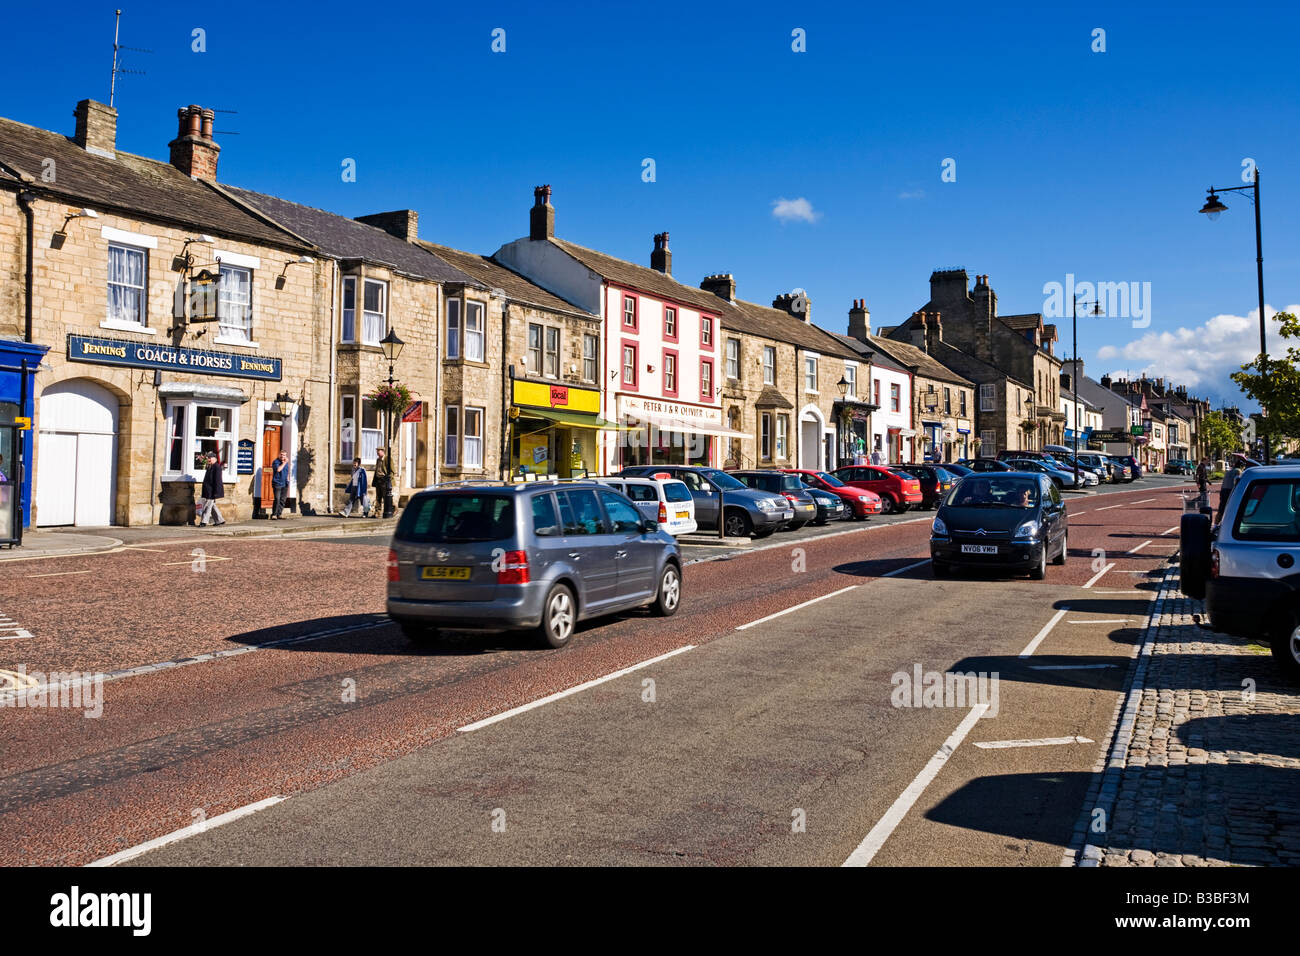 Galgate in Barnard Castle, County Durham, England, UK - Stock Image